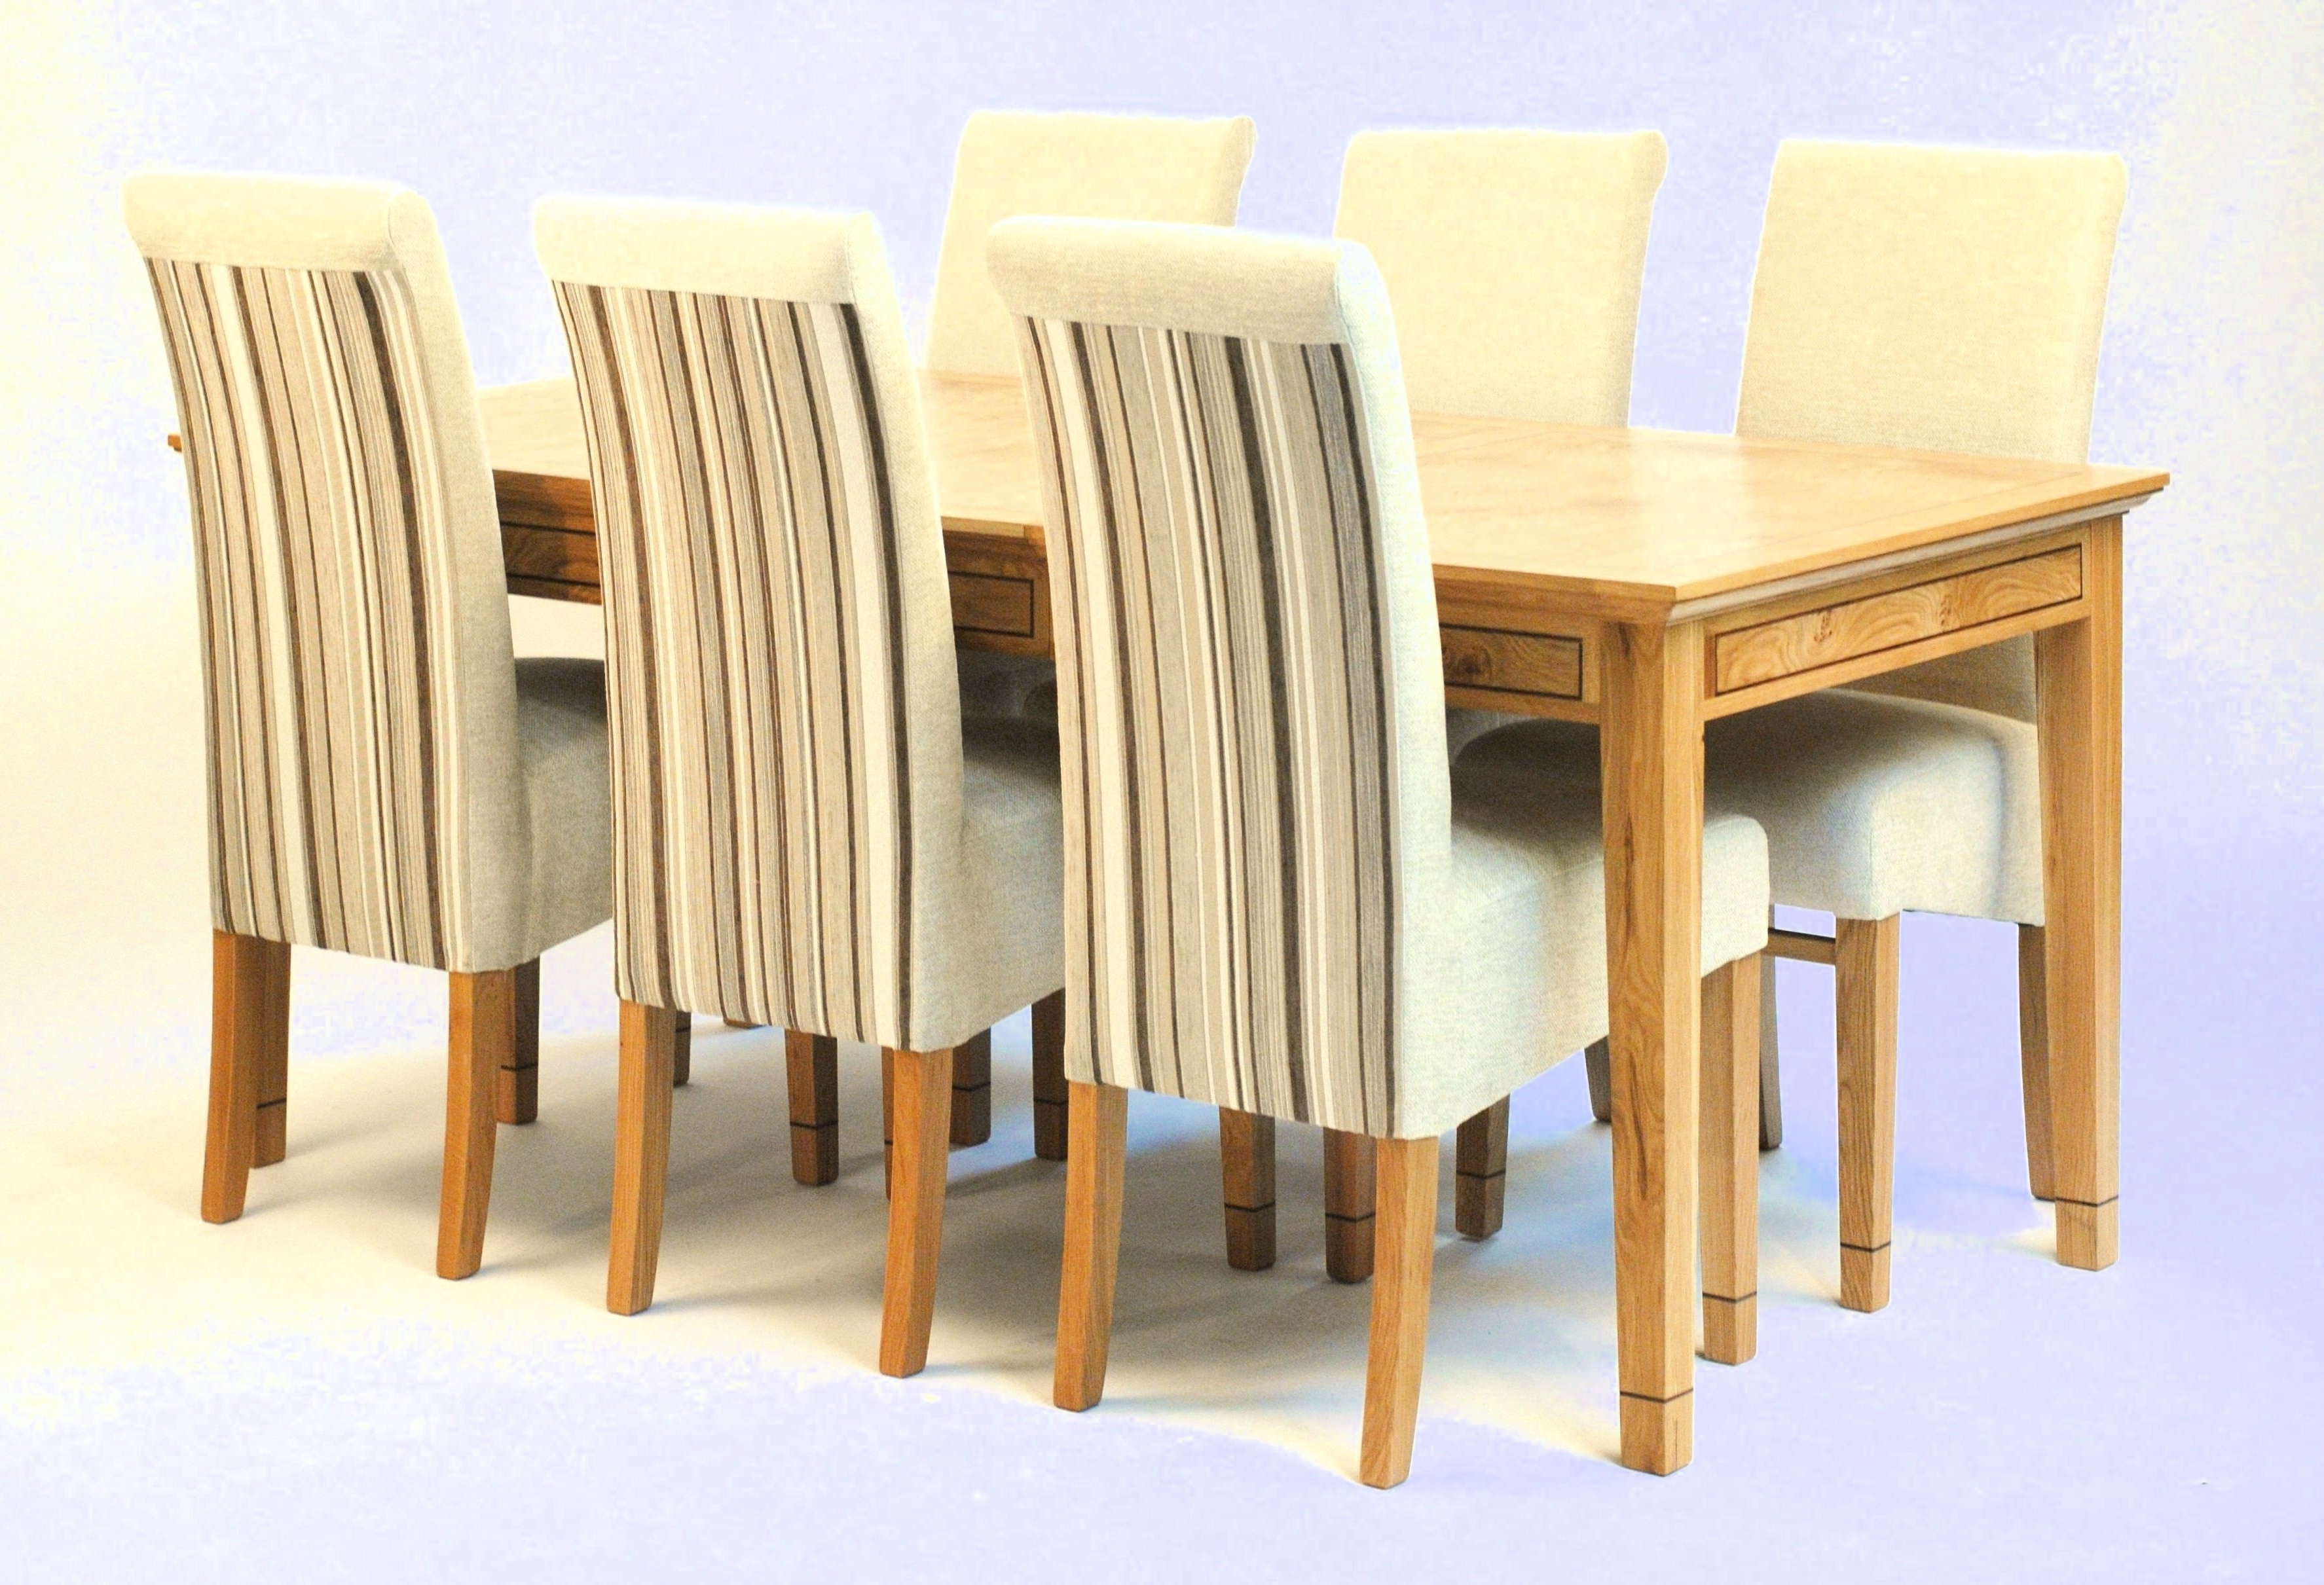 Extending Dining Tables And 6 Chairs Inside Most Current Oak Extending Dining Table & 6 Chairs (Gallery 5 of 25)